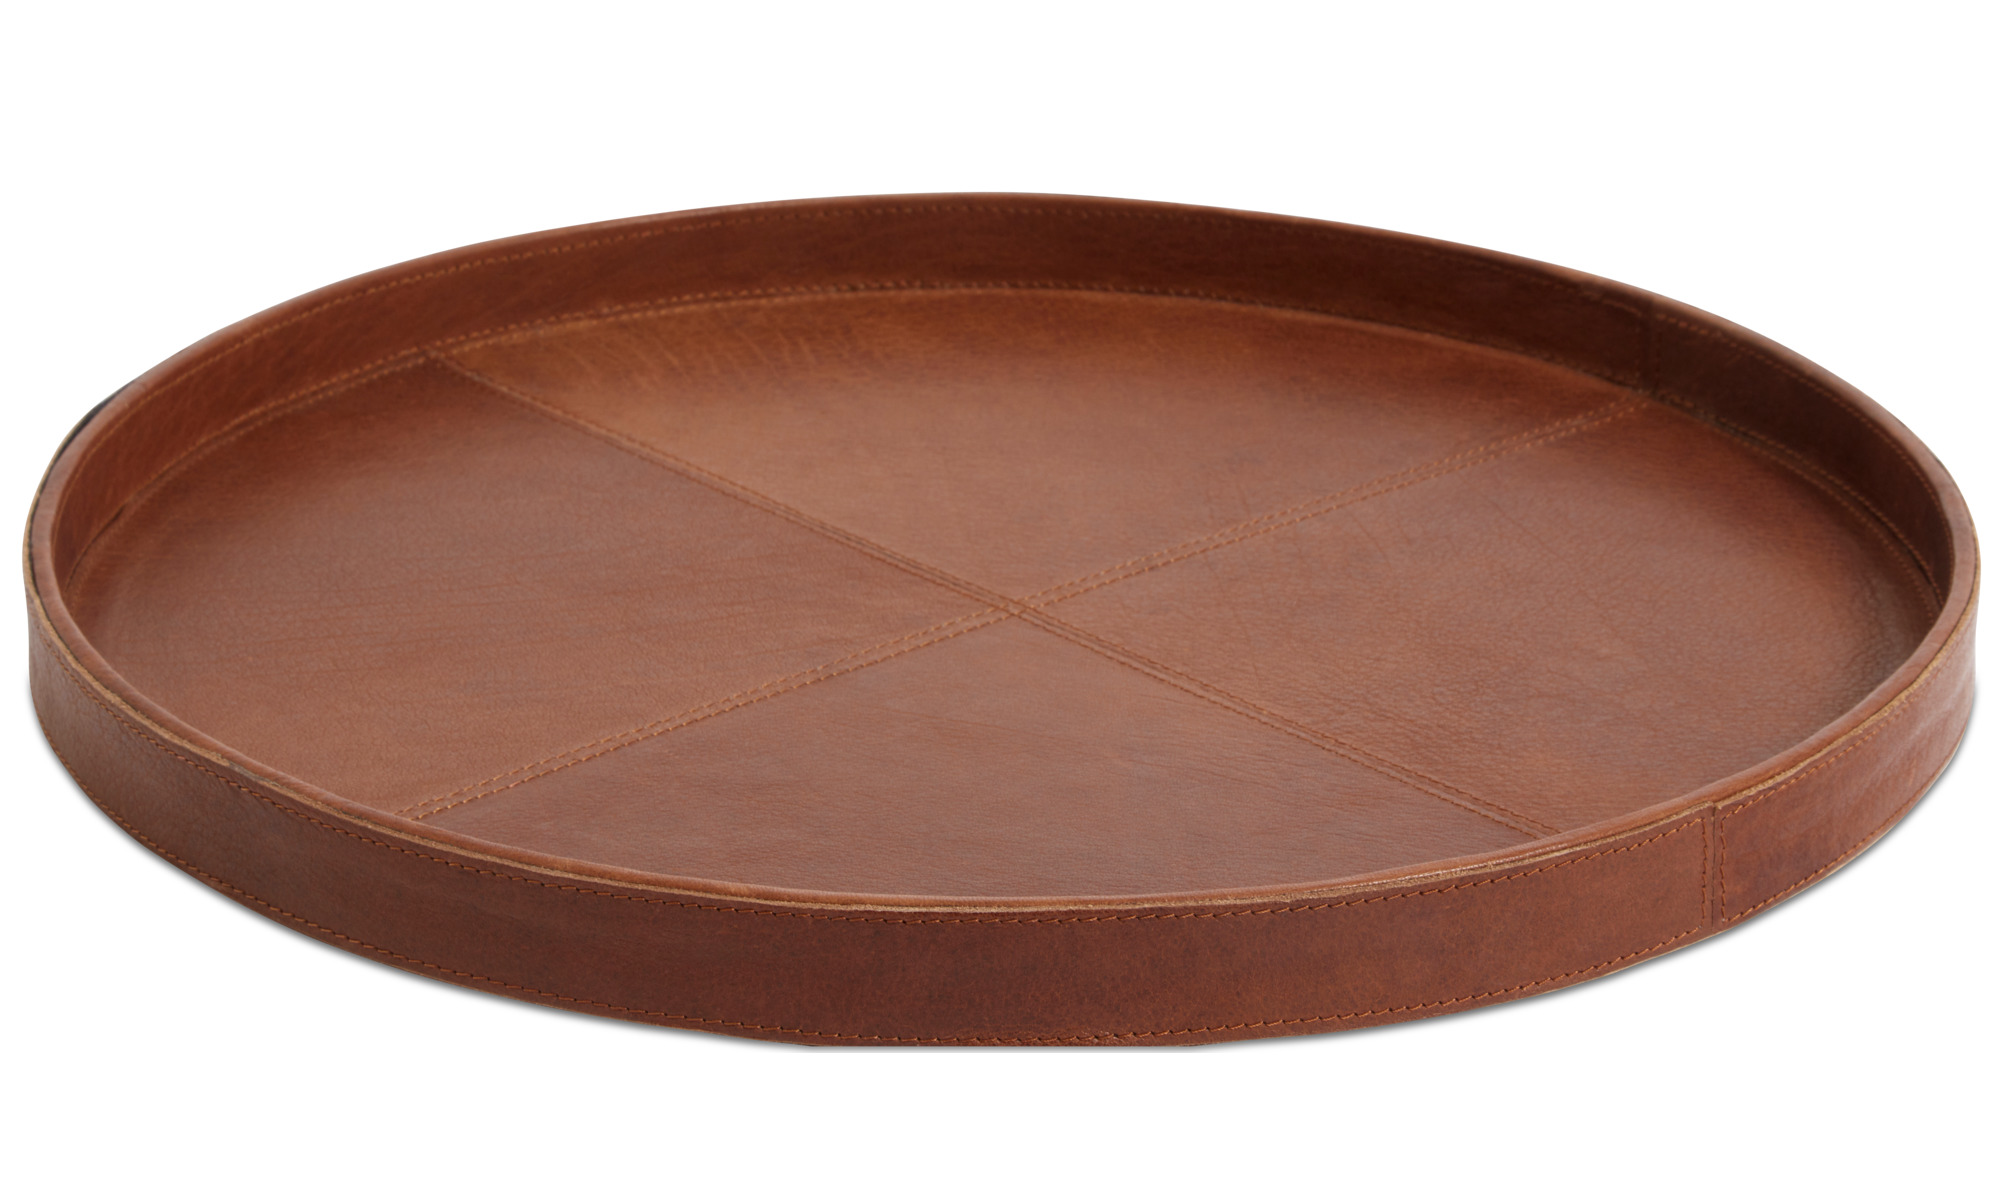 Decoration - Cater tray - Brown - Cardboard